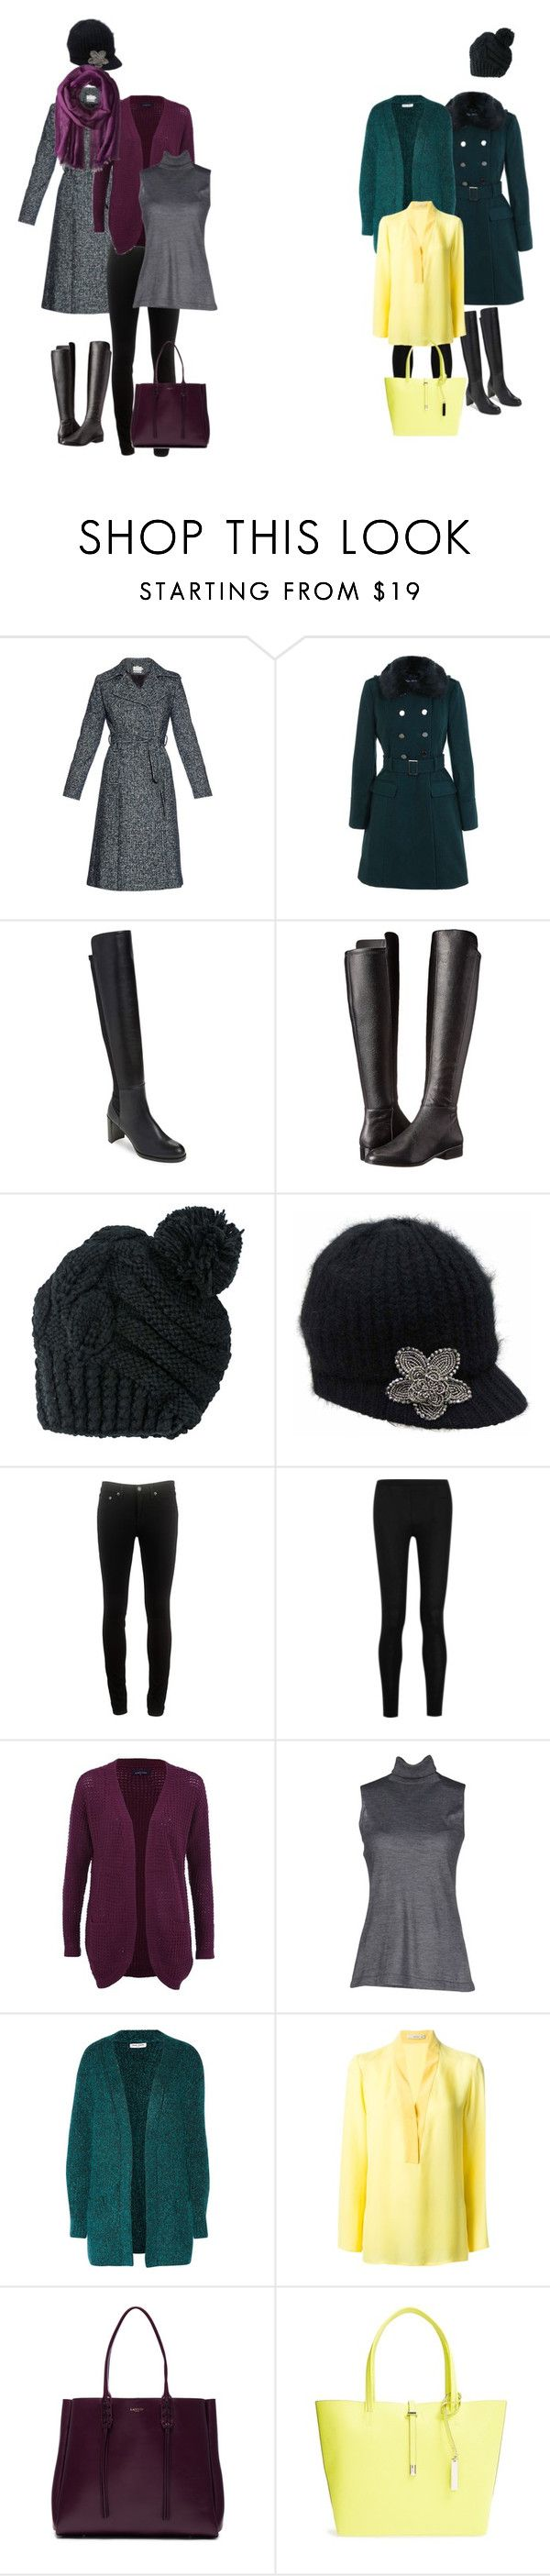 """winter style"" by havlova-blanka on Polyvore featuring Goat, Miss Selfridge, Stuart Weitzman, MICHAEL Michael Kors, rag & bone, Donna Karan, ONLY, Pringle of Scotland, Opening Ceremony and Etro"